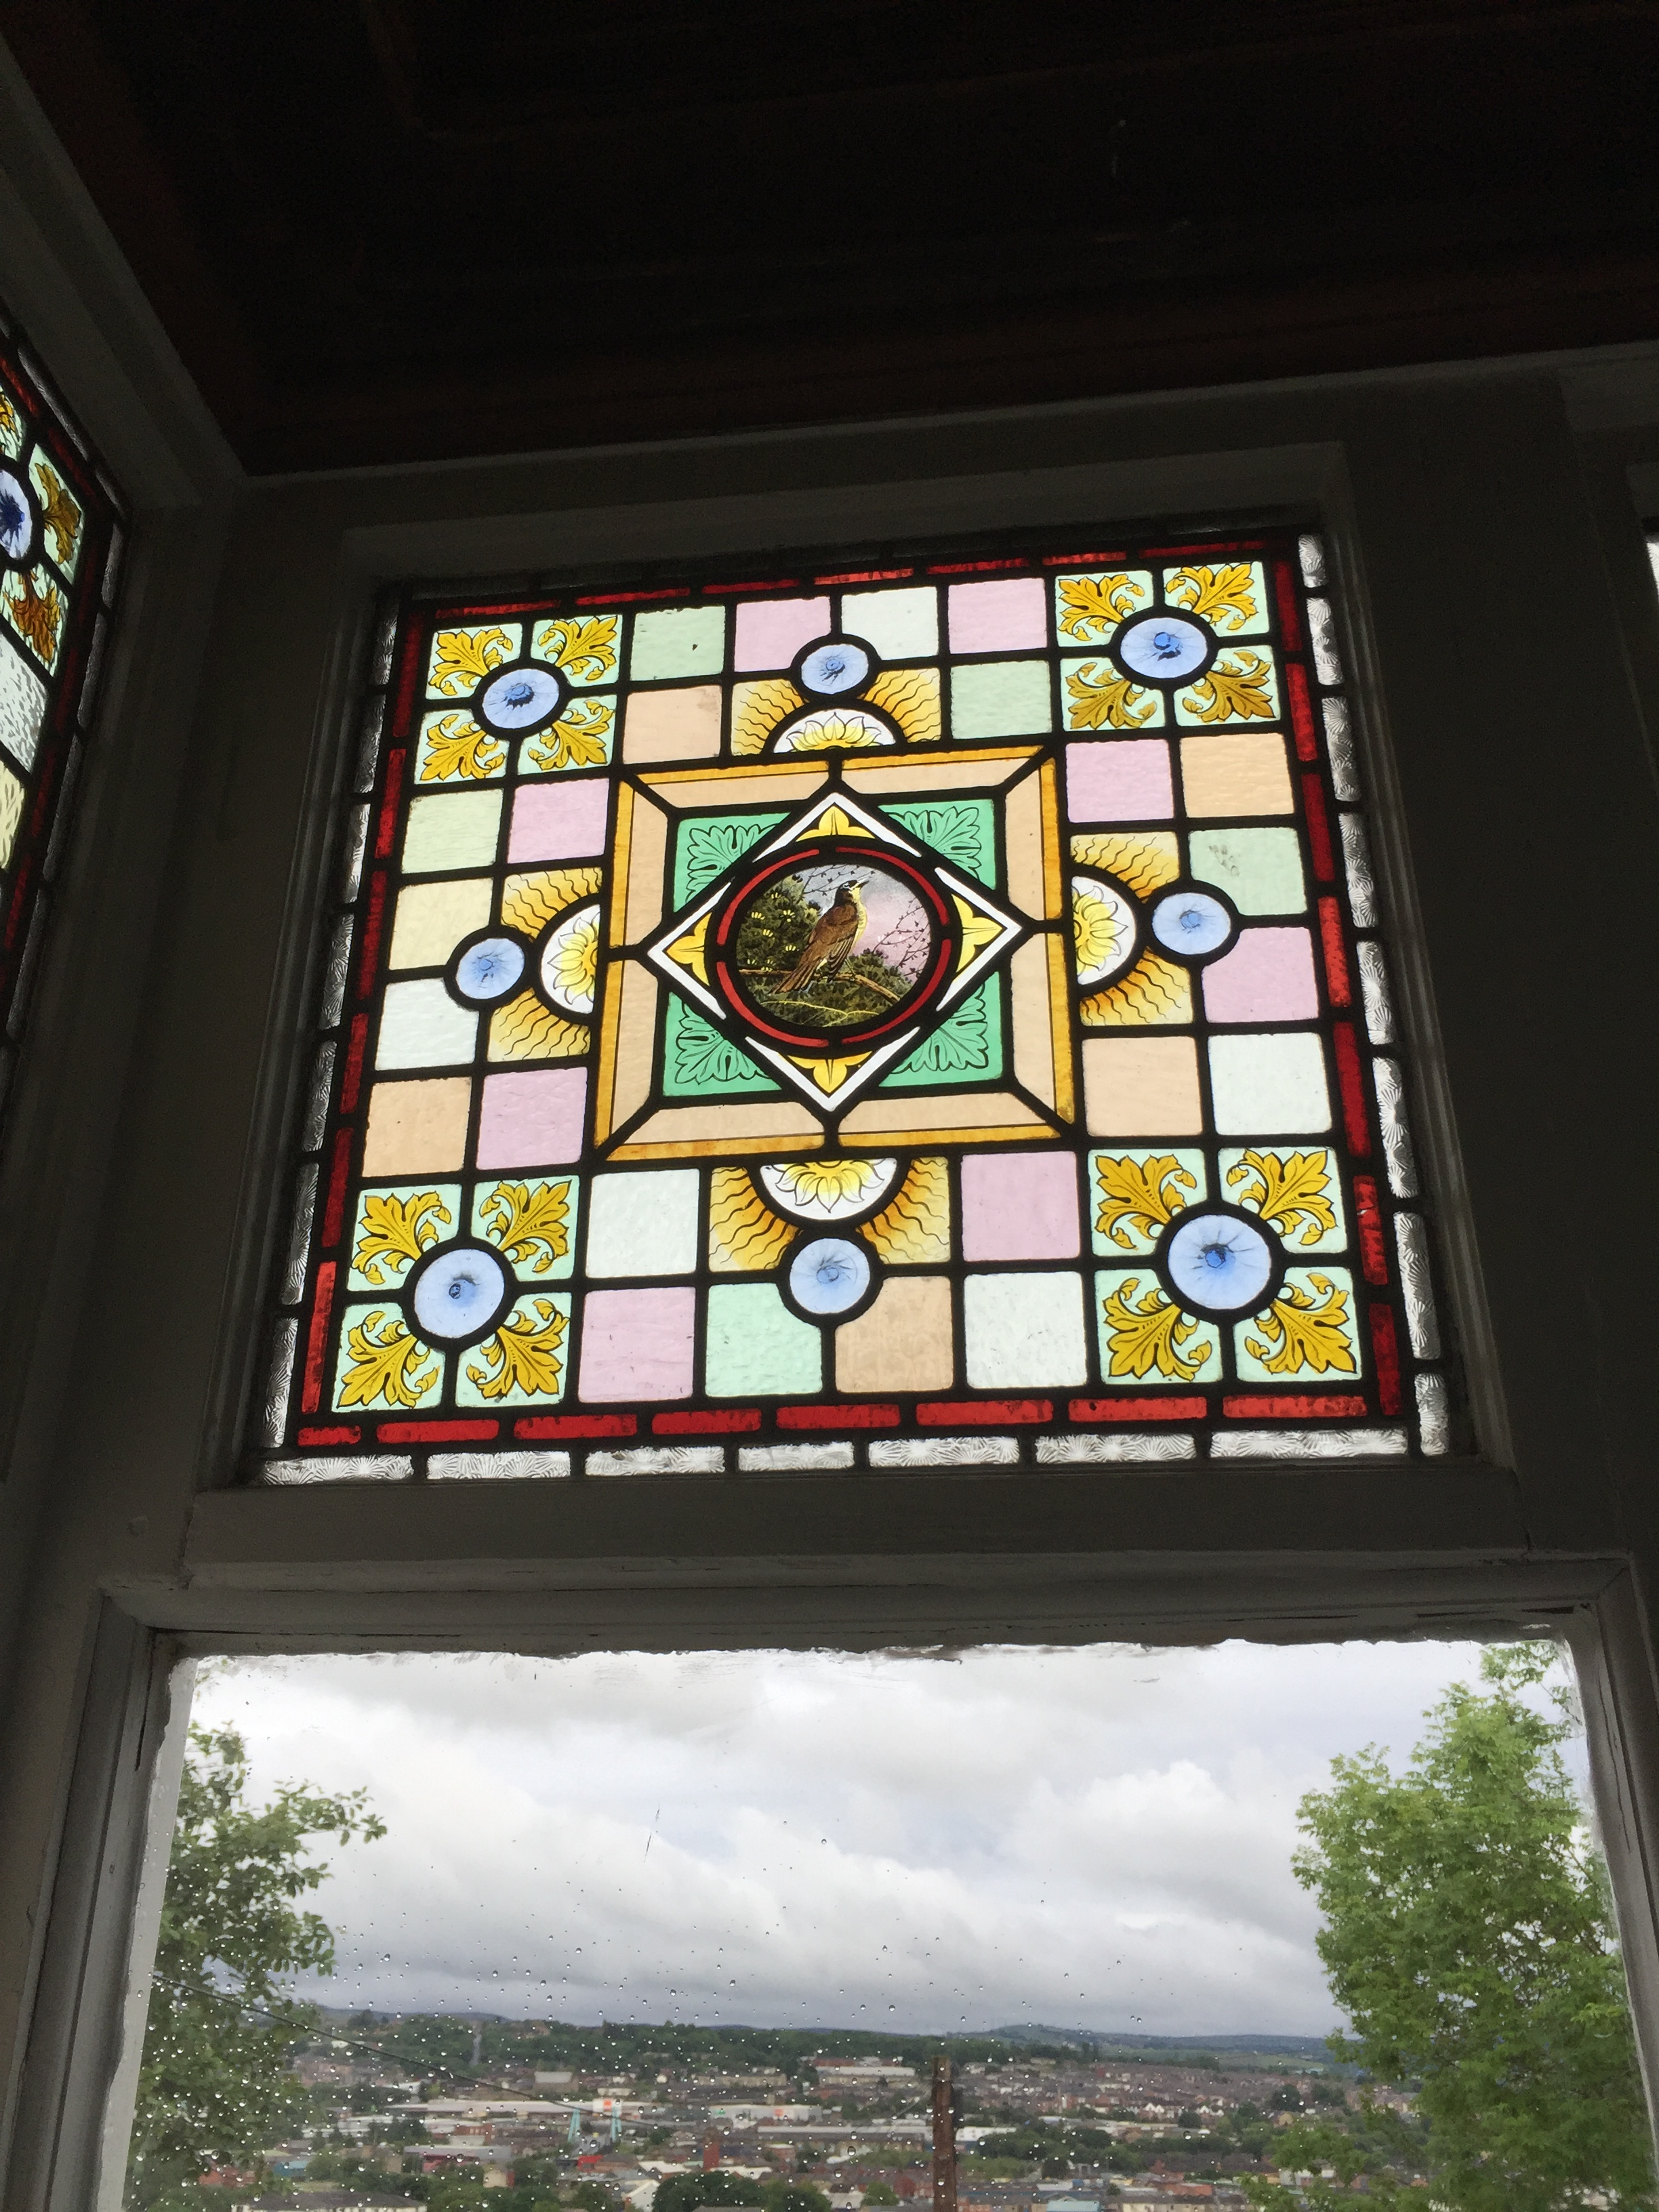 Stained glass on window from 1890's